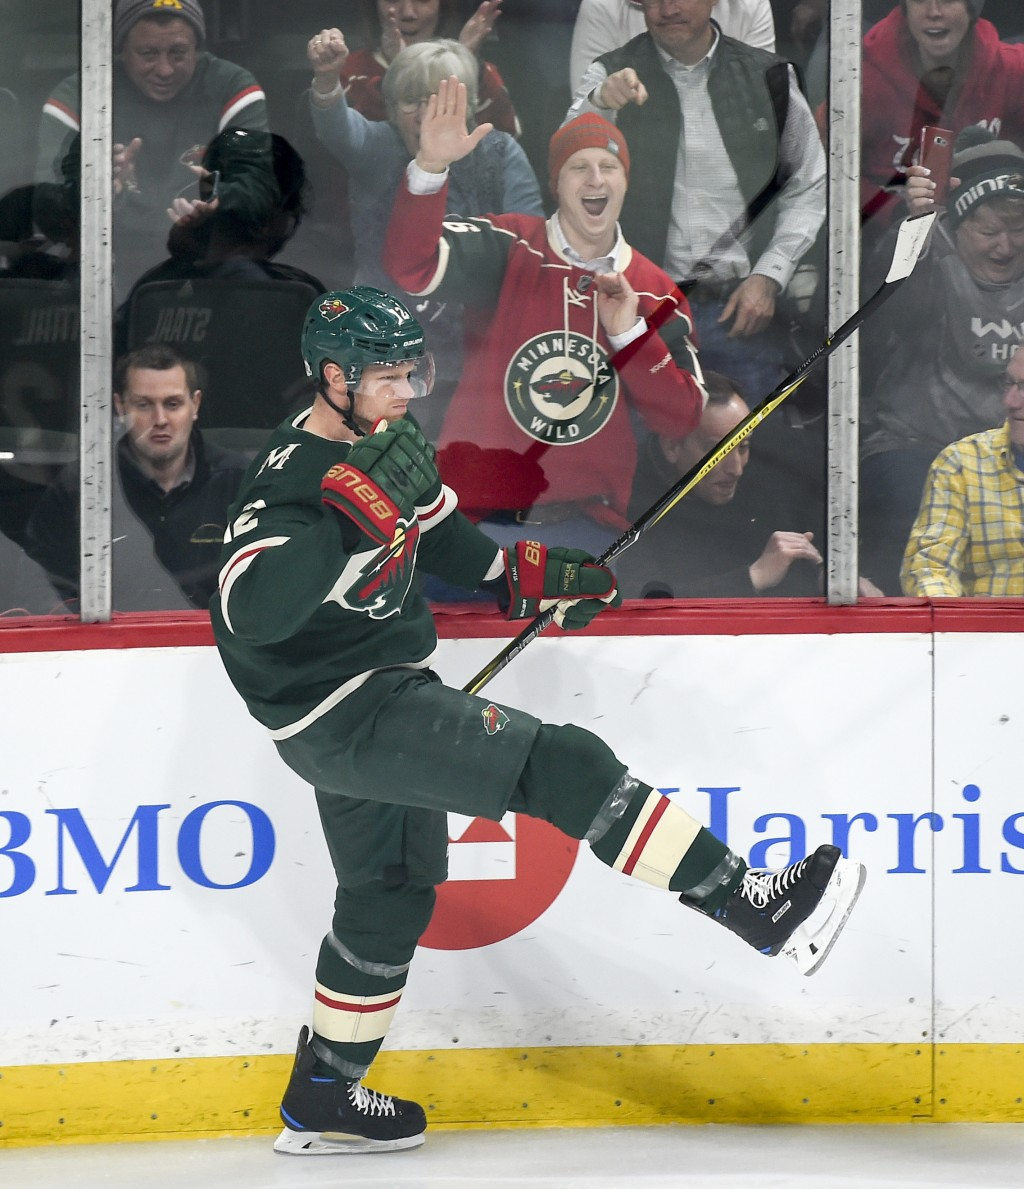 Minnesota Wild center Eric Staal celebrates after scoring against the New York Rangers during the first period of an NHL hockey game Tuesday, Feb. 13,